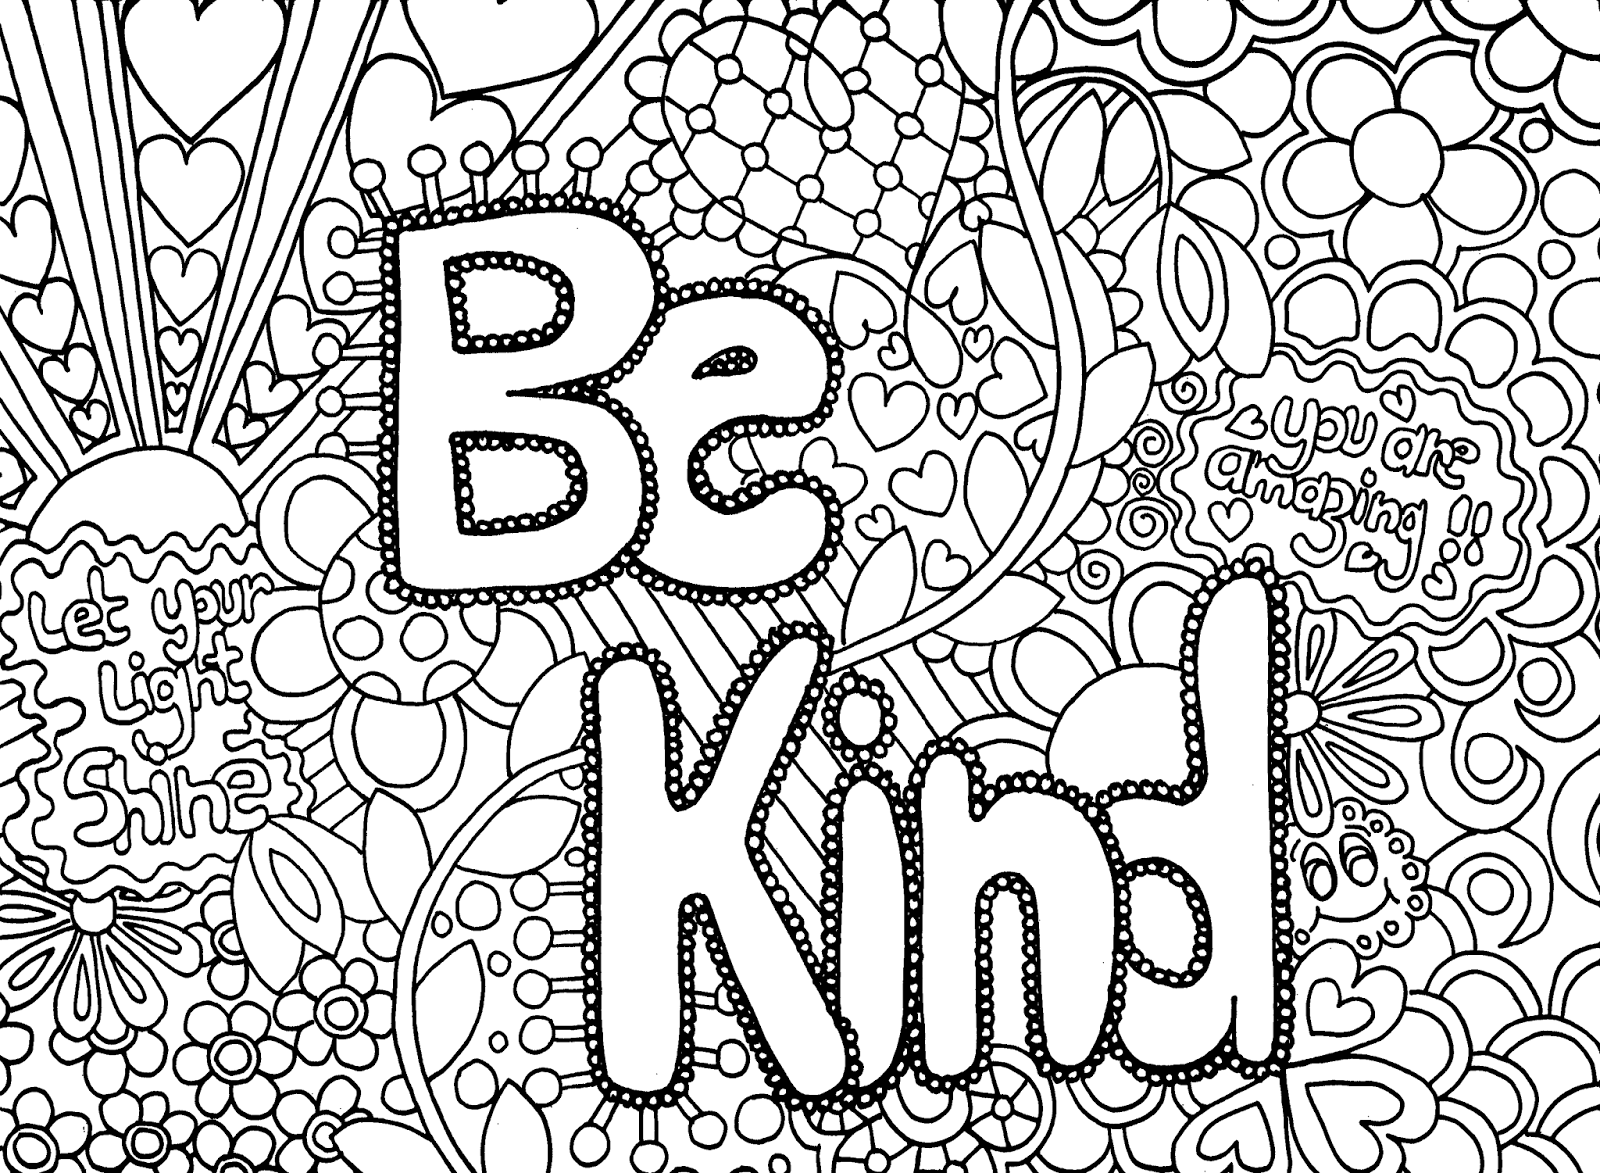 Coloring Pages Amusing Hard Coloring Pages For Adults  Best Coloring Pages For Kids Decorating Design